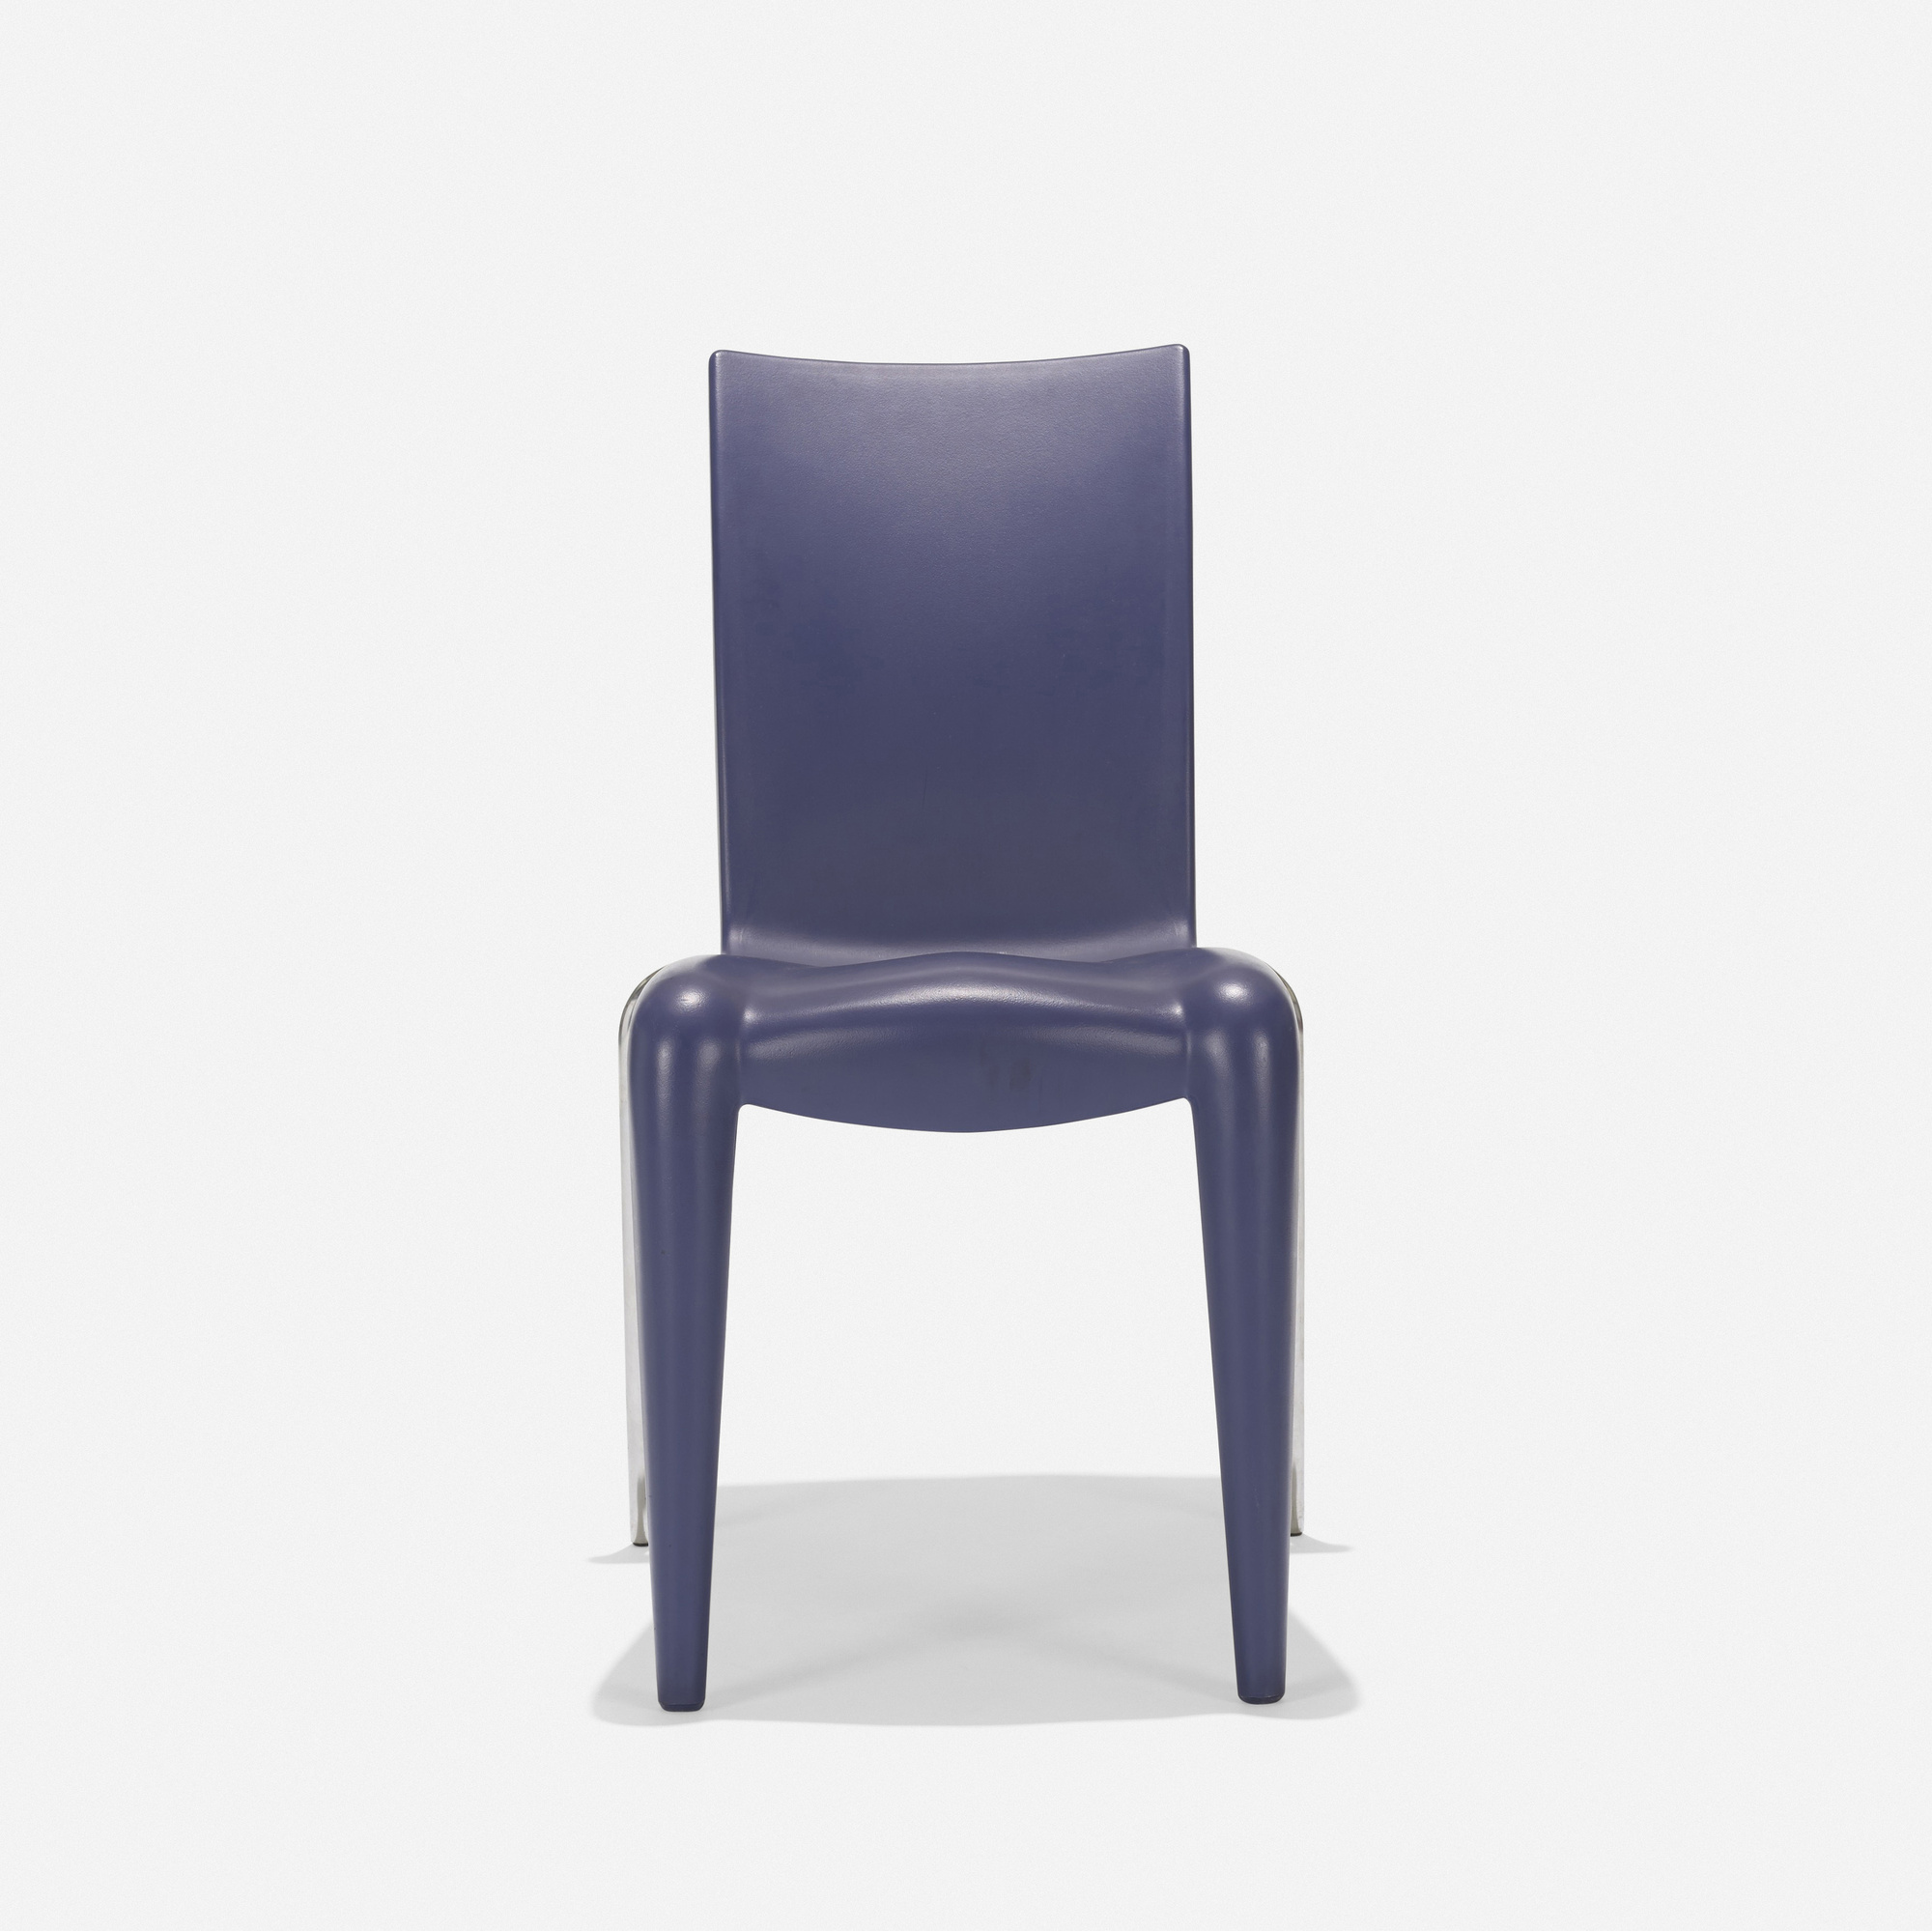 166: Philippe Starck / Louis 20 chair (2 of 4)